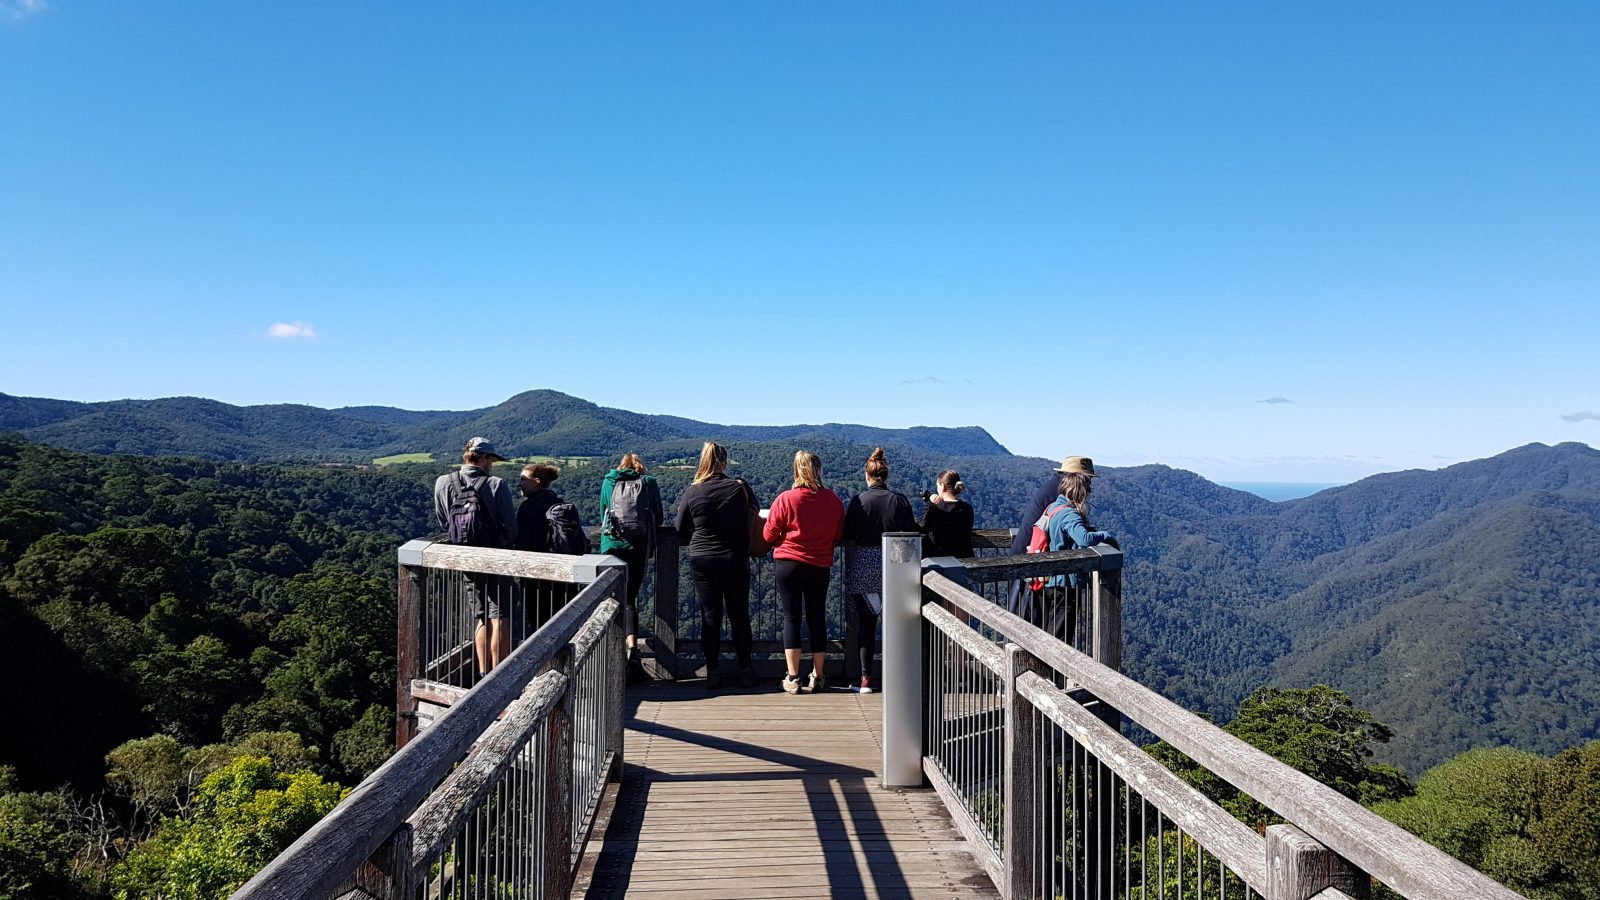 This Skywalk takes you above the canopy to view the spectacular National Park from above.